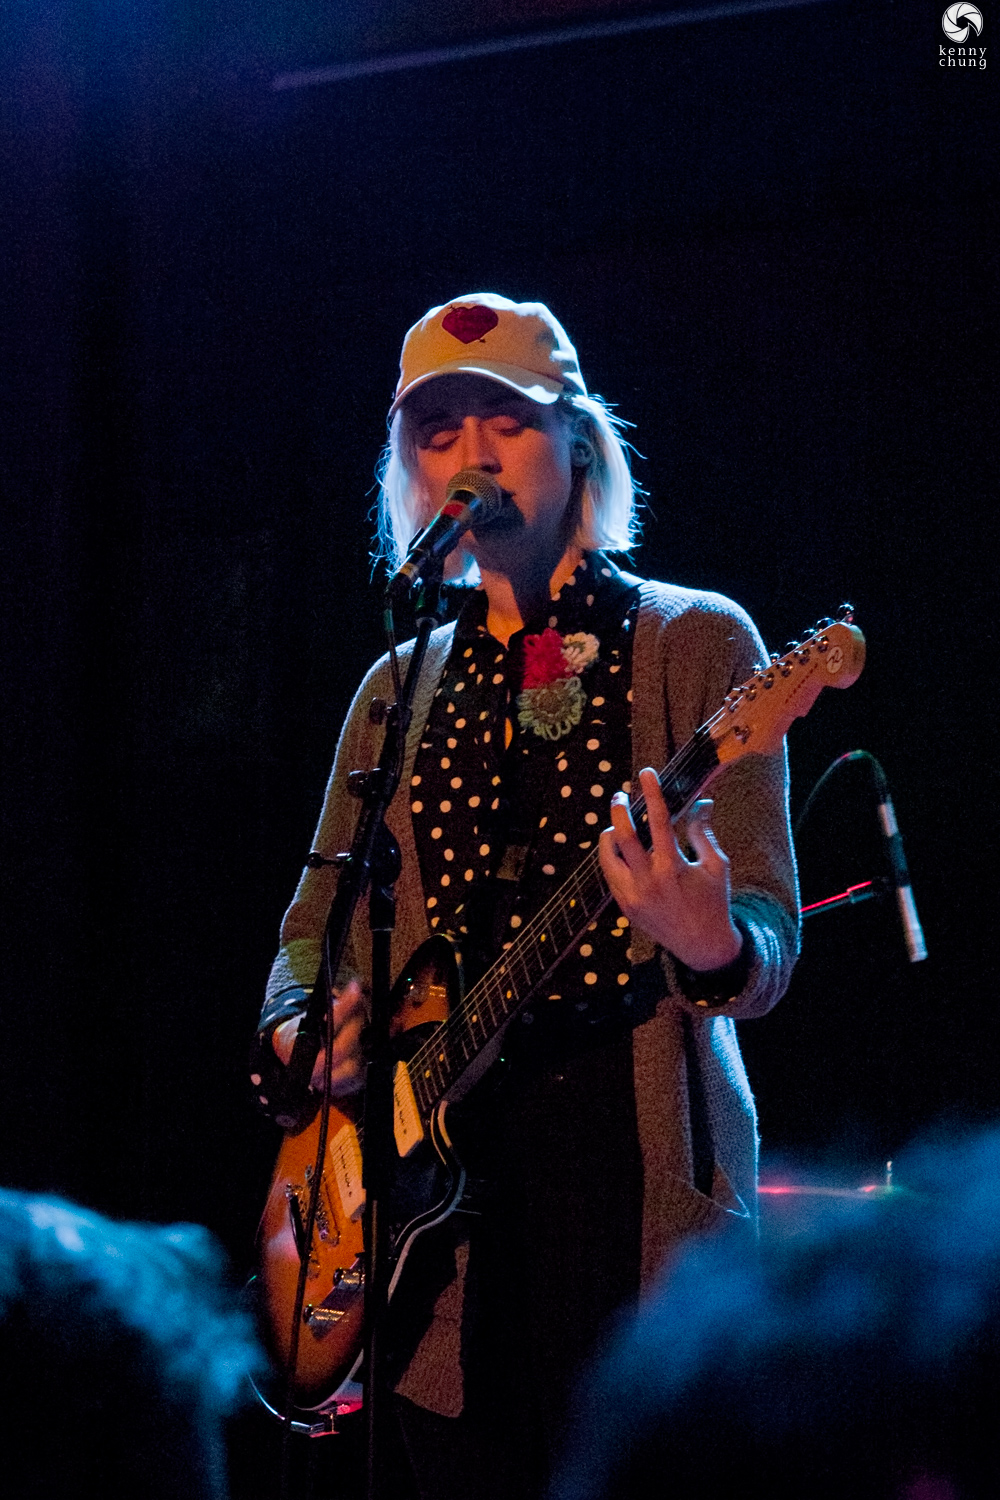 Kiley Lotz of Petal playing her Reverend Charger 290 guitar at the Bowery Ballroom